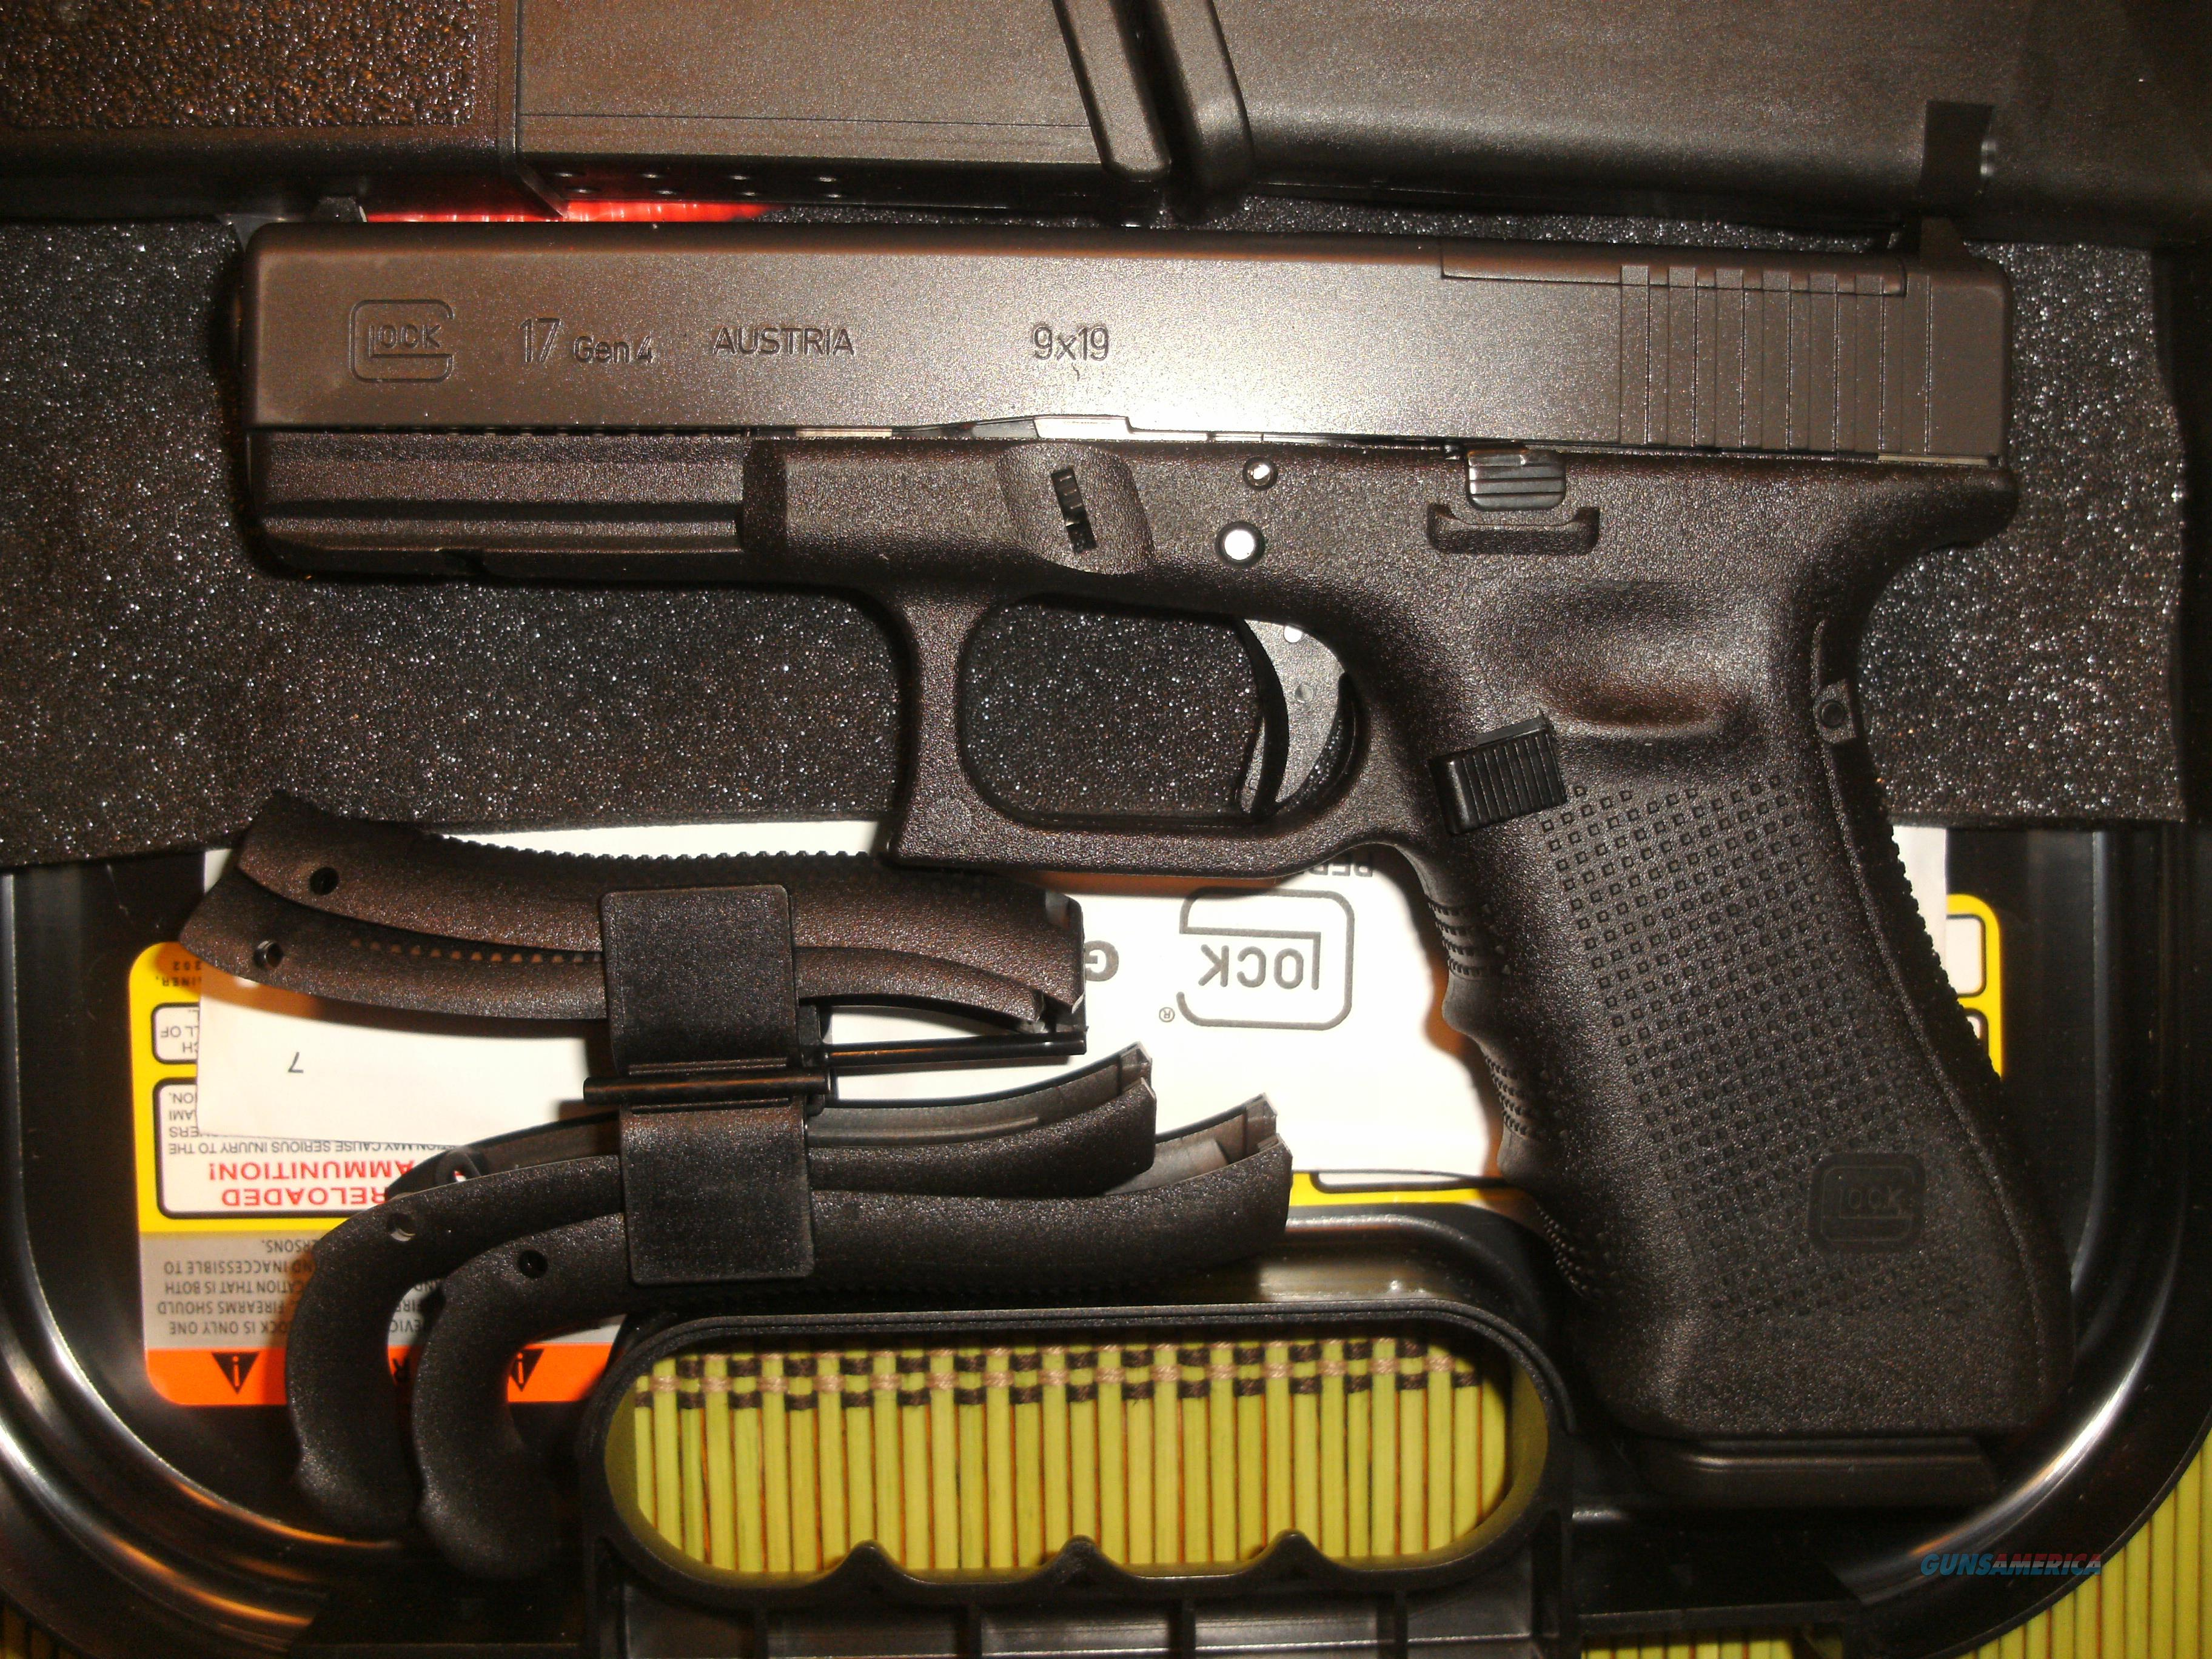 GLOCK 17 GEN 4 MOS - READY FOR OPTIC - NEW IN BOX - LOCAL PICKUP OK OR SHIP TO YOUR FFL  Guns > Pistols > Glock Pistols > 17